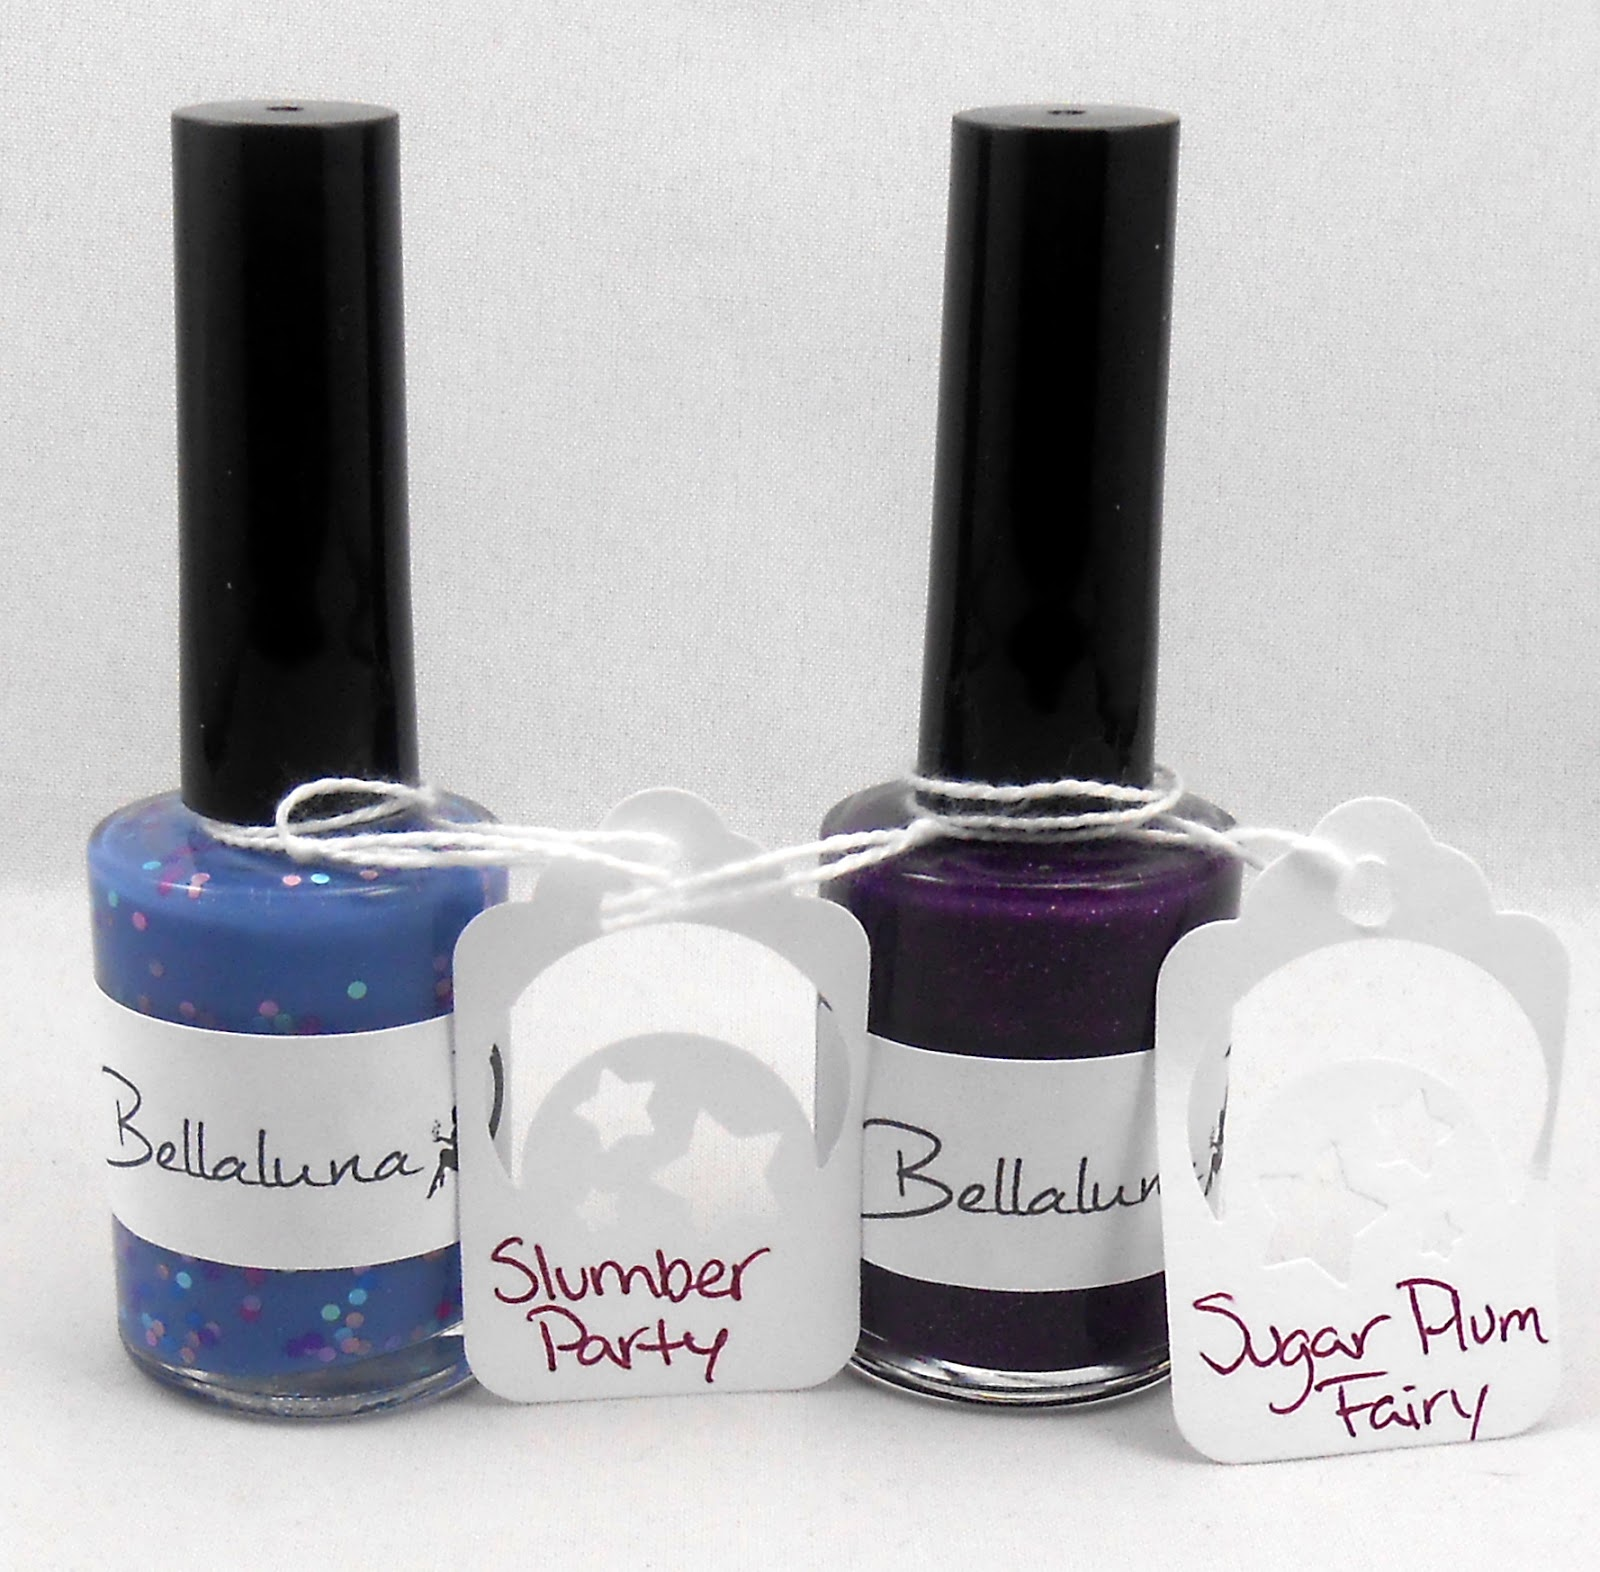 indie nail polish Bellaluna, slumber party and sugar plum fairy